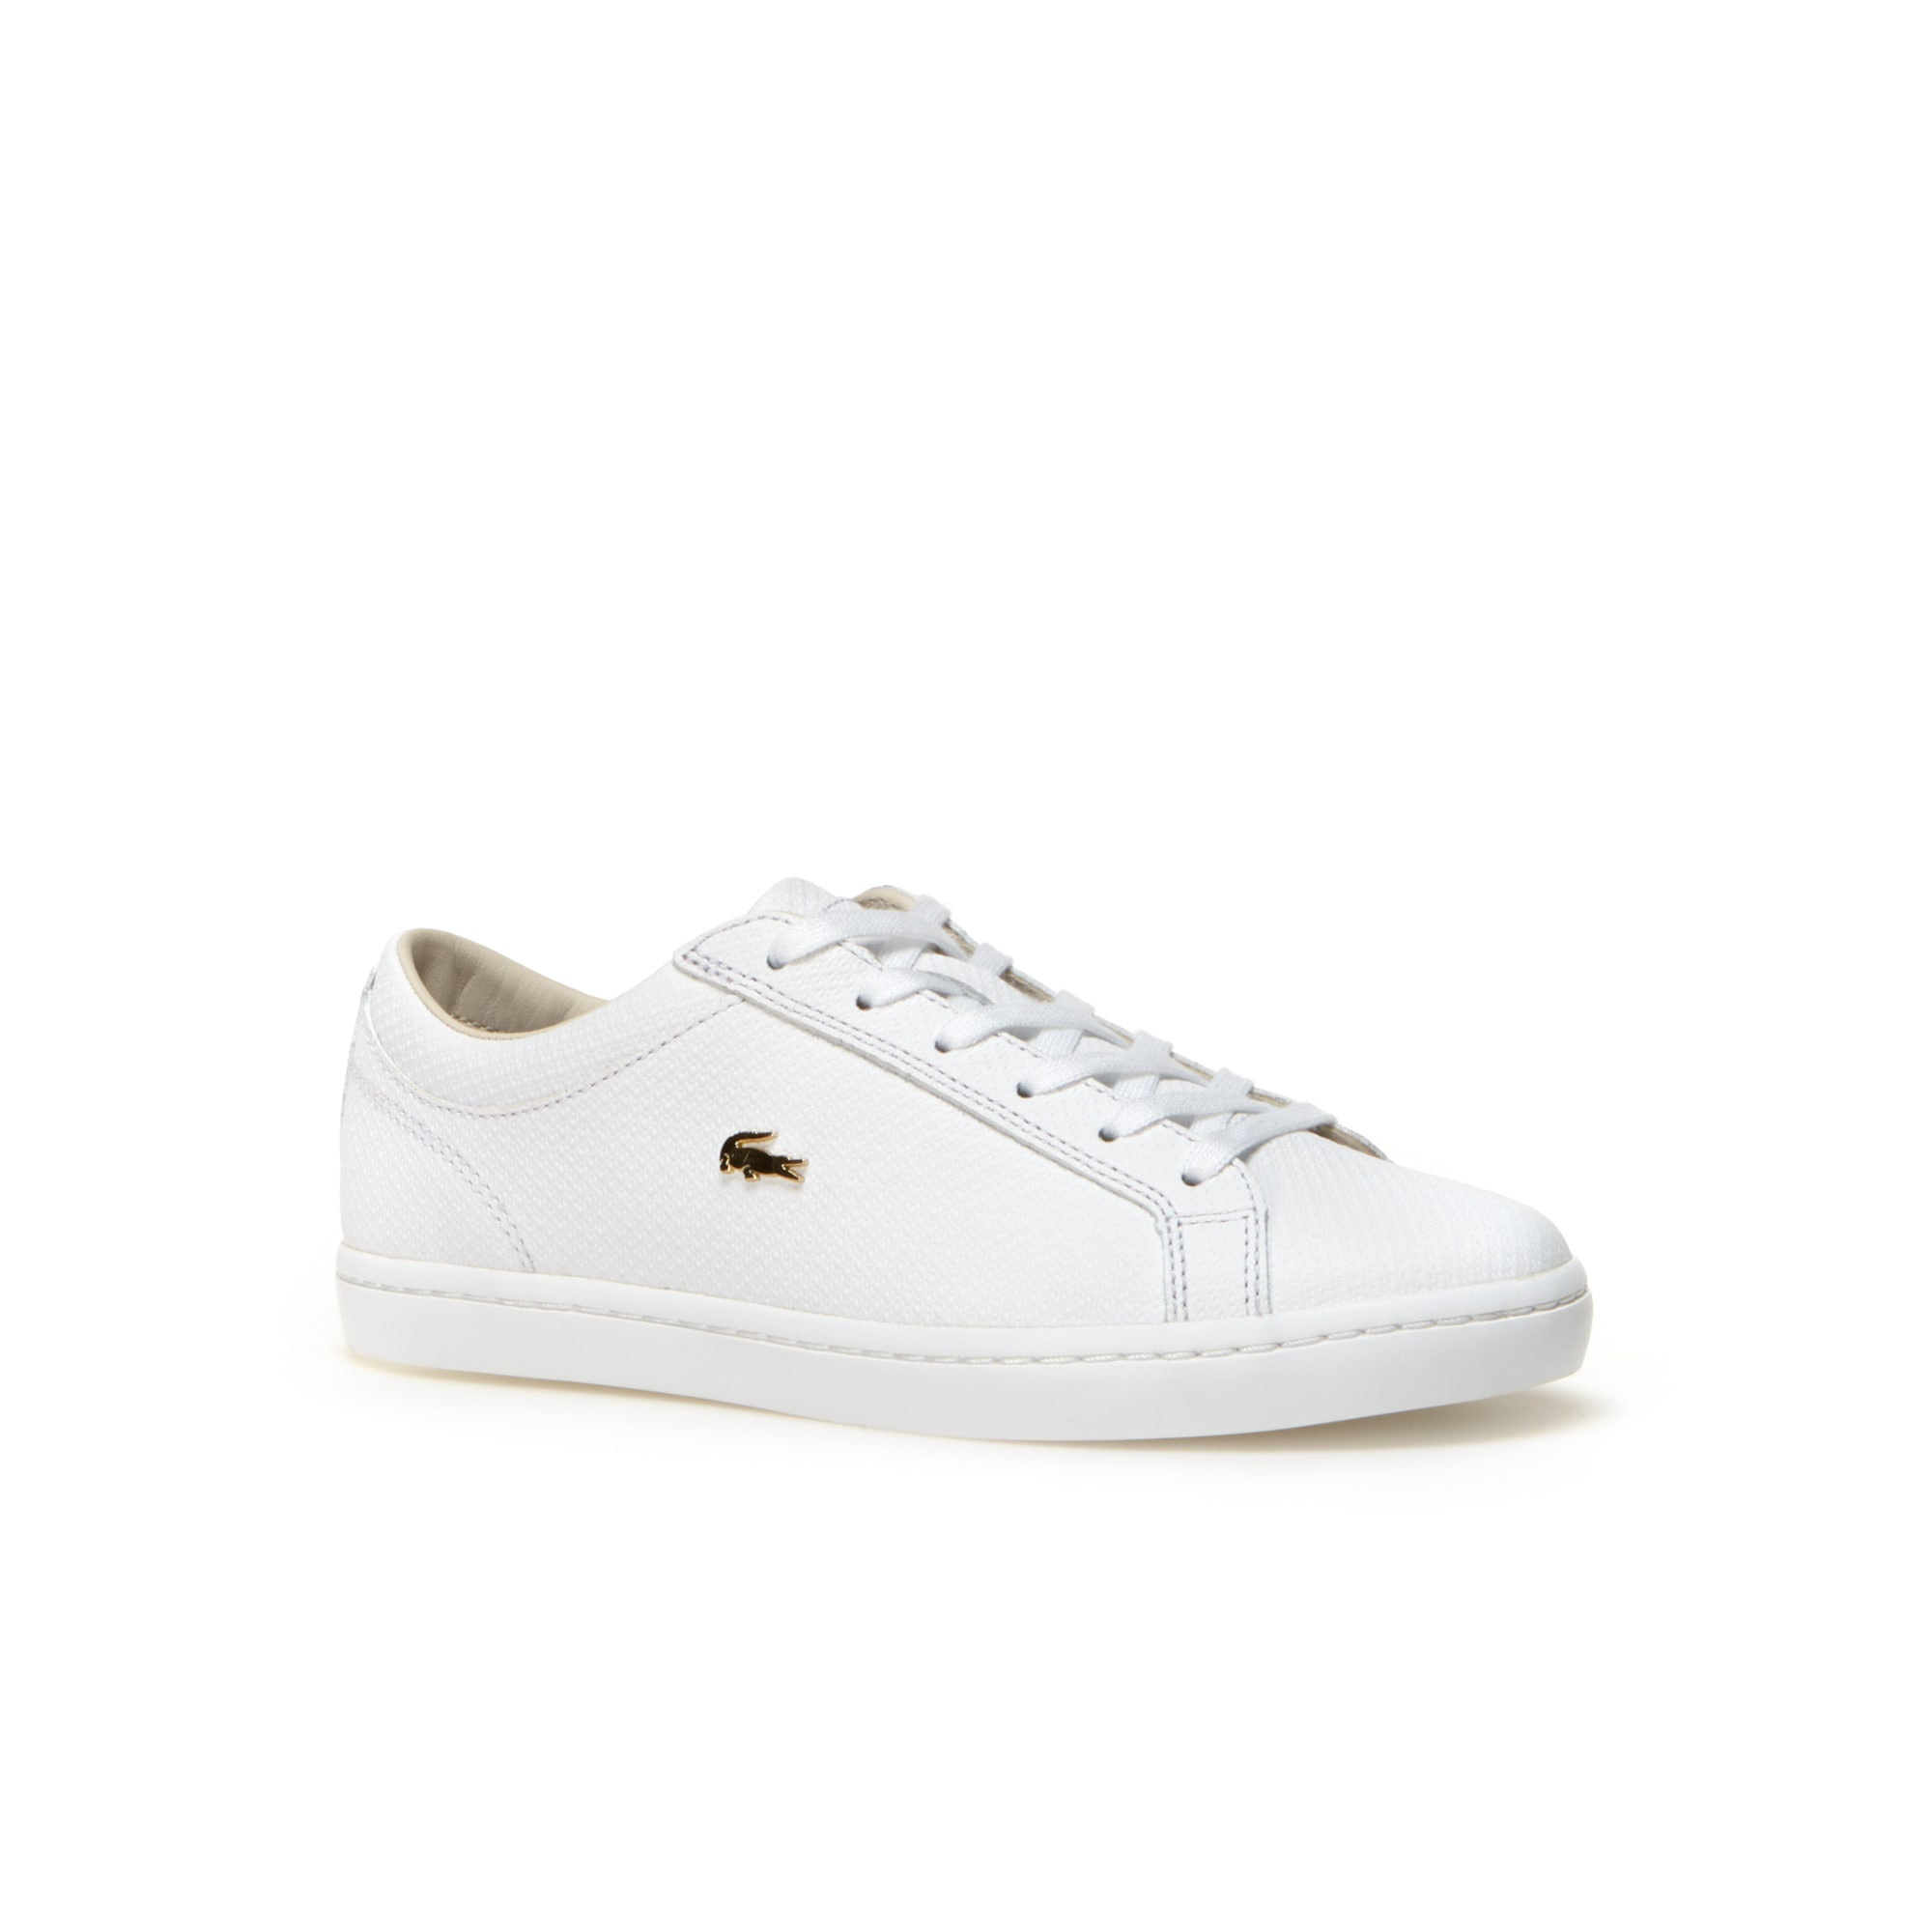 da33b6def Women s Straightset Leather trainers With Golden Croc. £85.00. Women s  Carnaby Evo Metallic Trainers